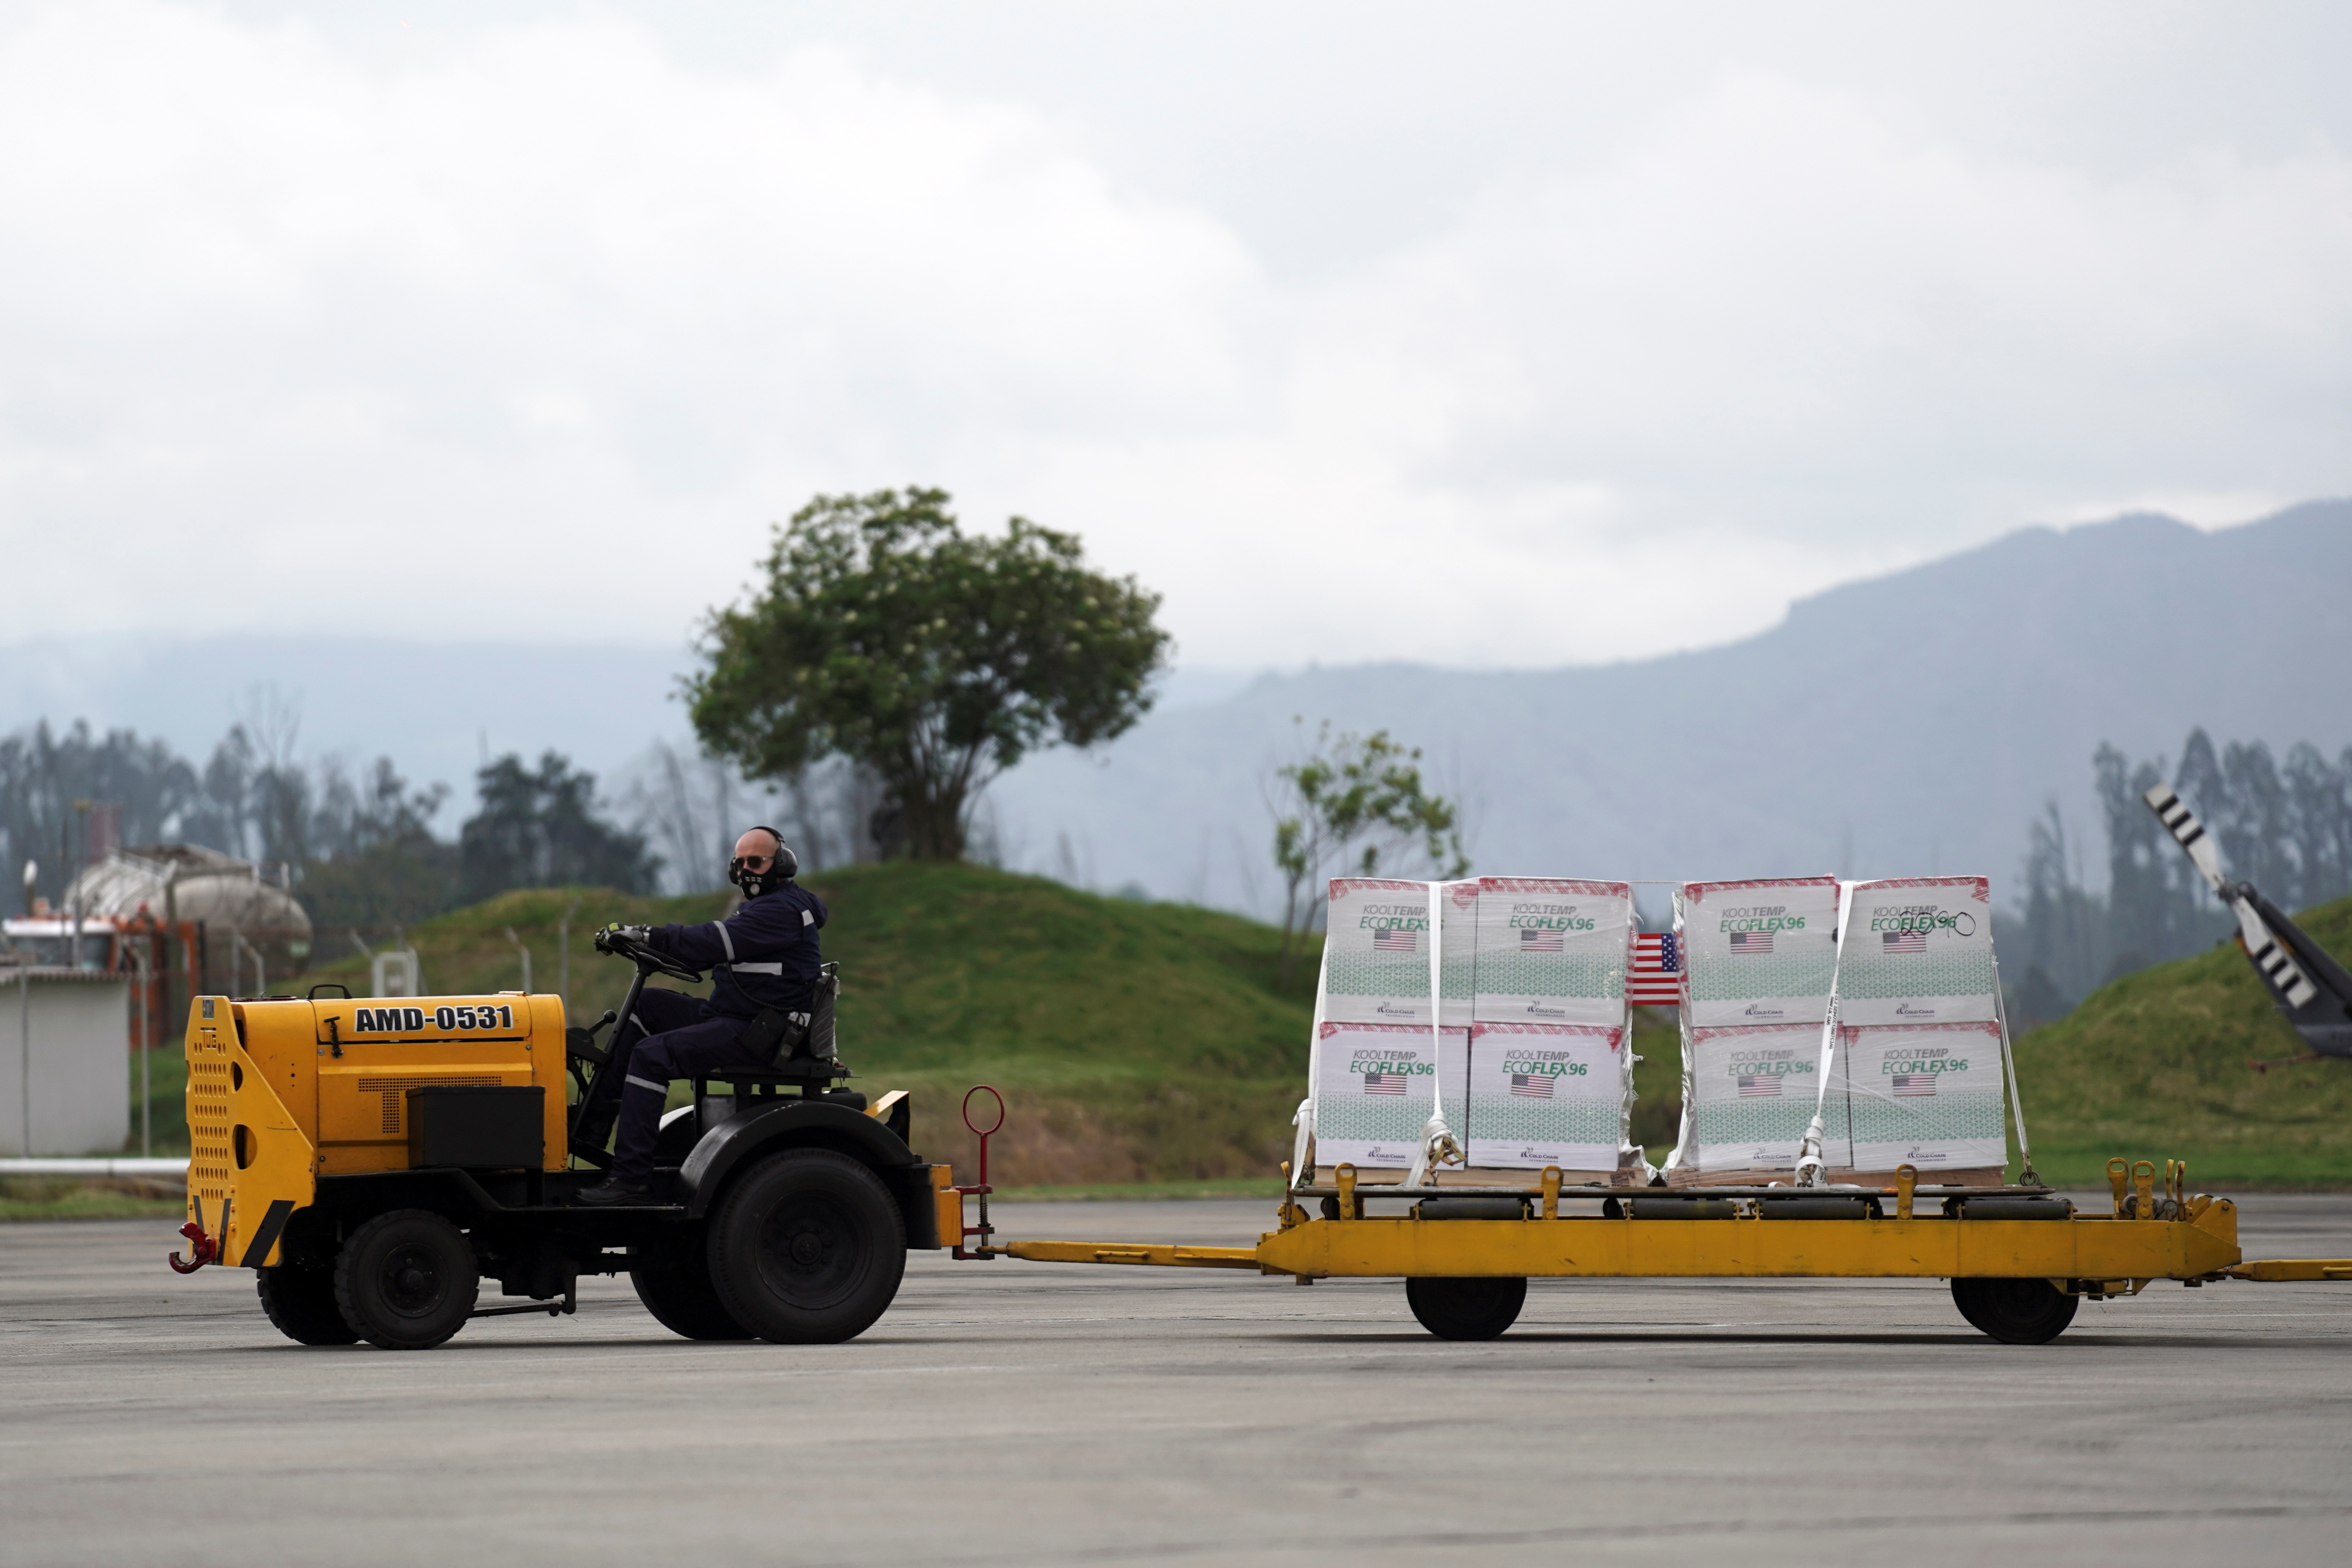 Shipment of Johnson & Johnson vaccines against the coronavirus disease (COVID-19), donated by the US, is unloaded in Bogota, Colombia July 1, 2021. REUTERS/Nathalia Angarita - RC2PBO968LNY